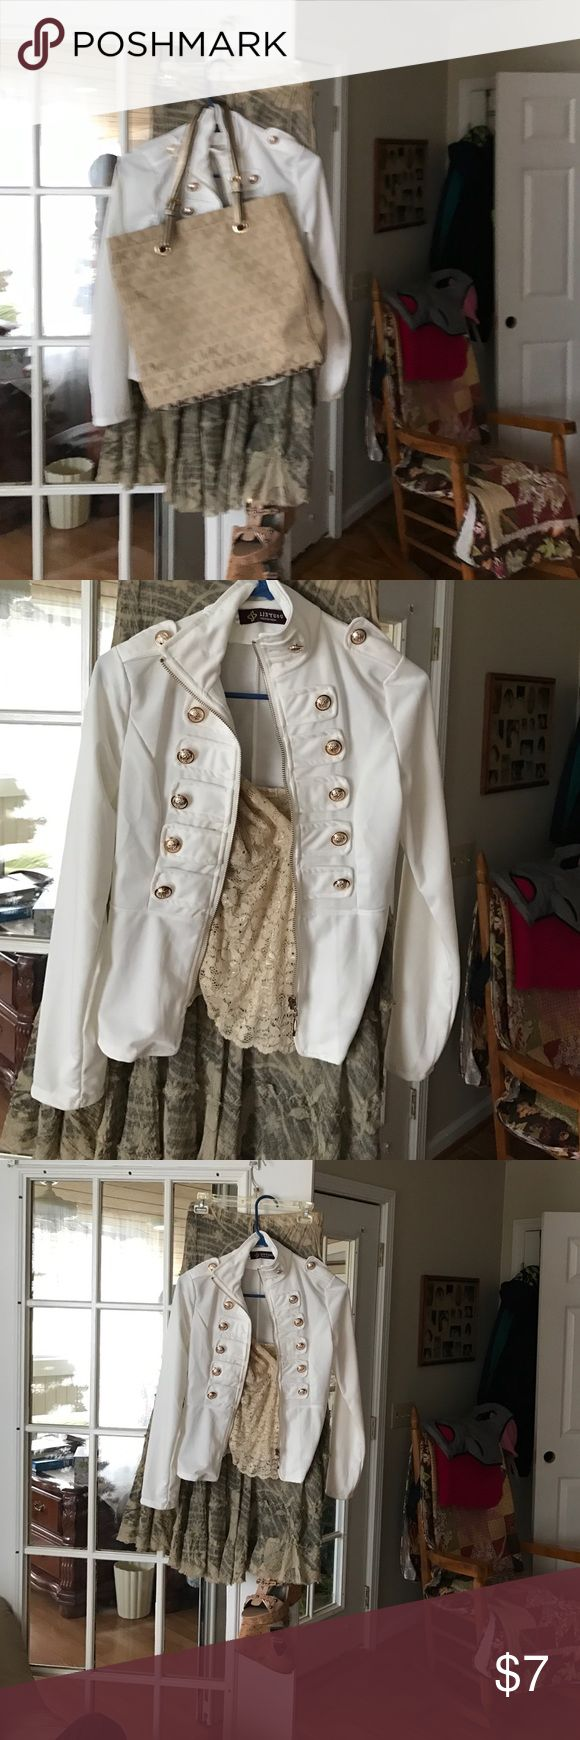 White zip up blouse Very cute white with gold grommet type buttons .. Linyuou Fashion Wear Tops Blouses